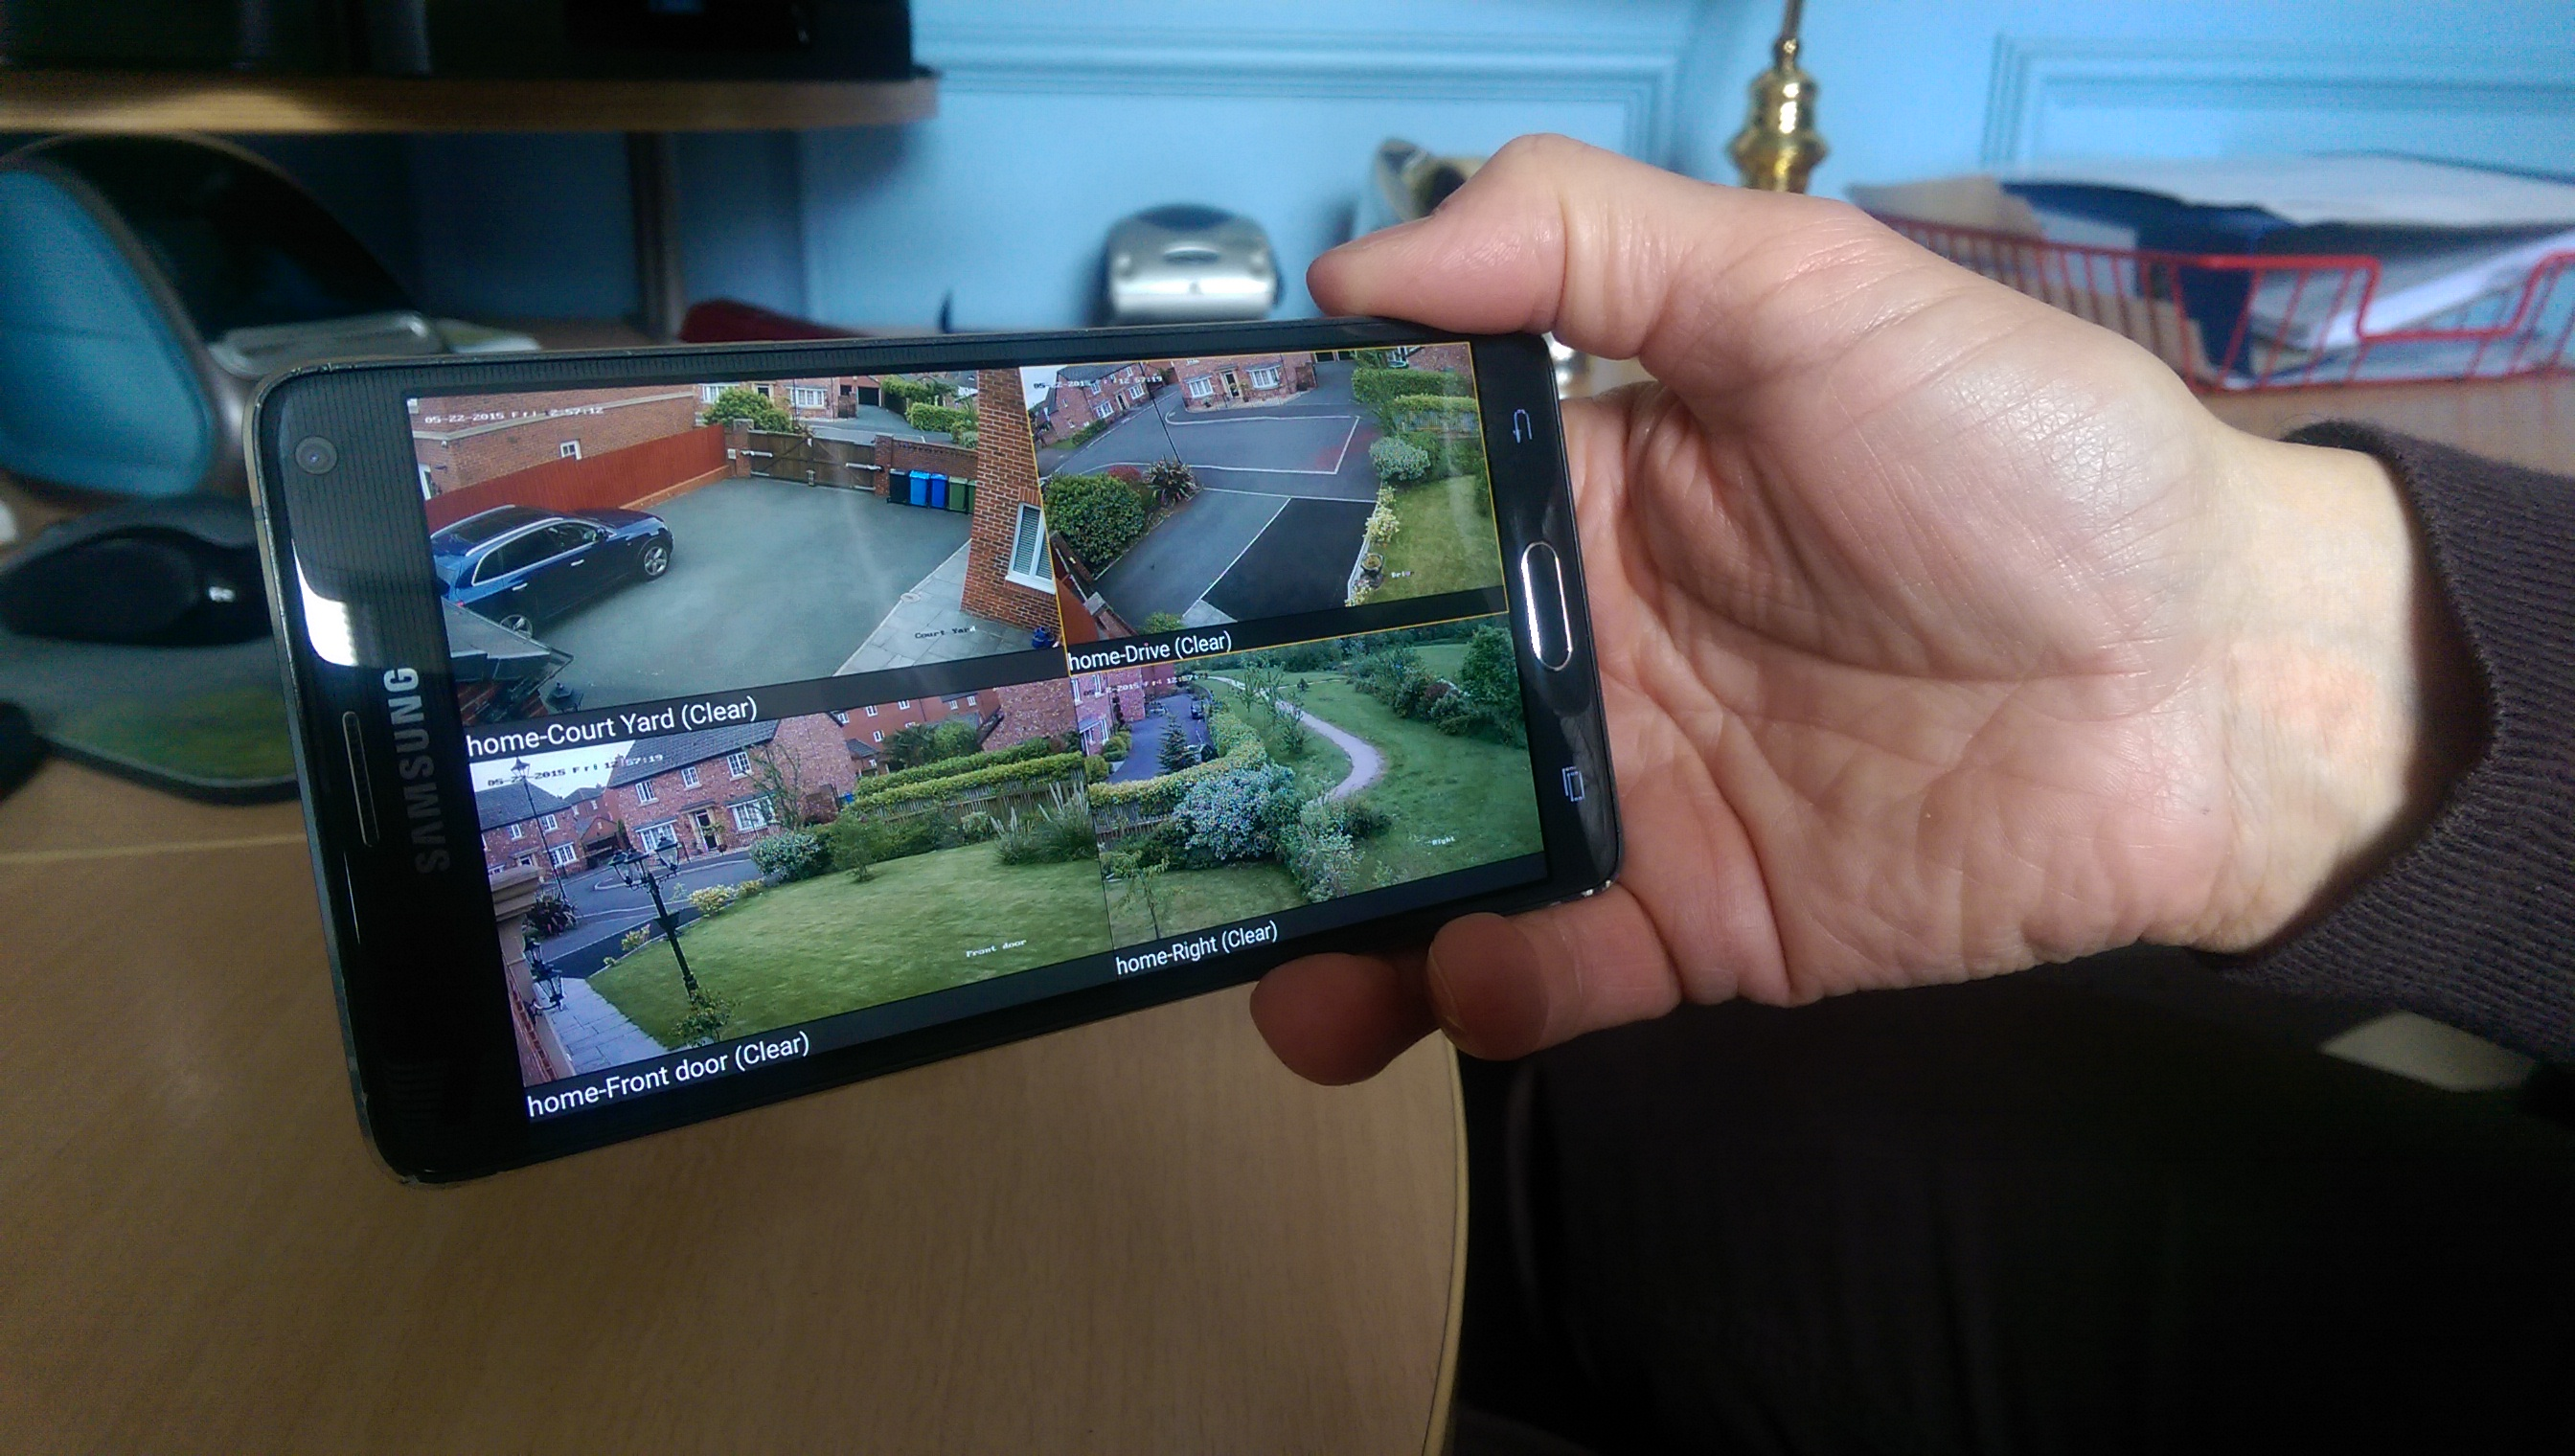 High Definition CCTV on Smartphone